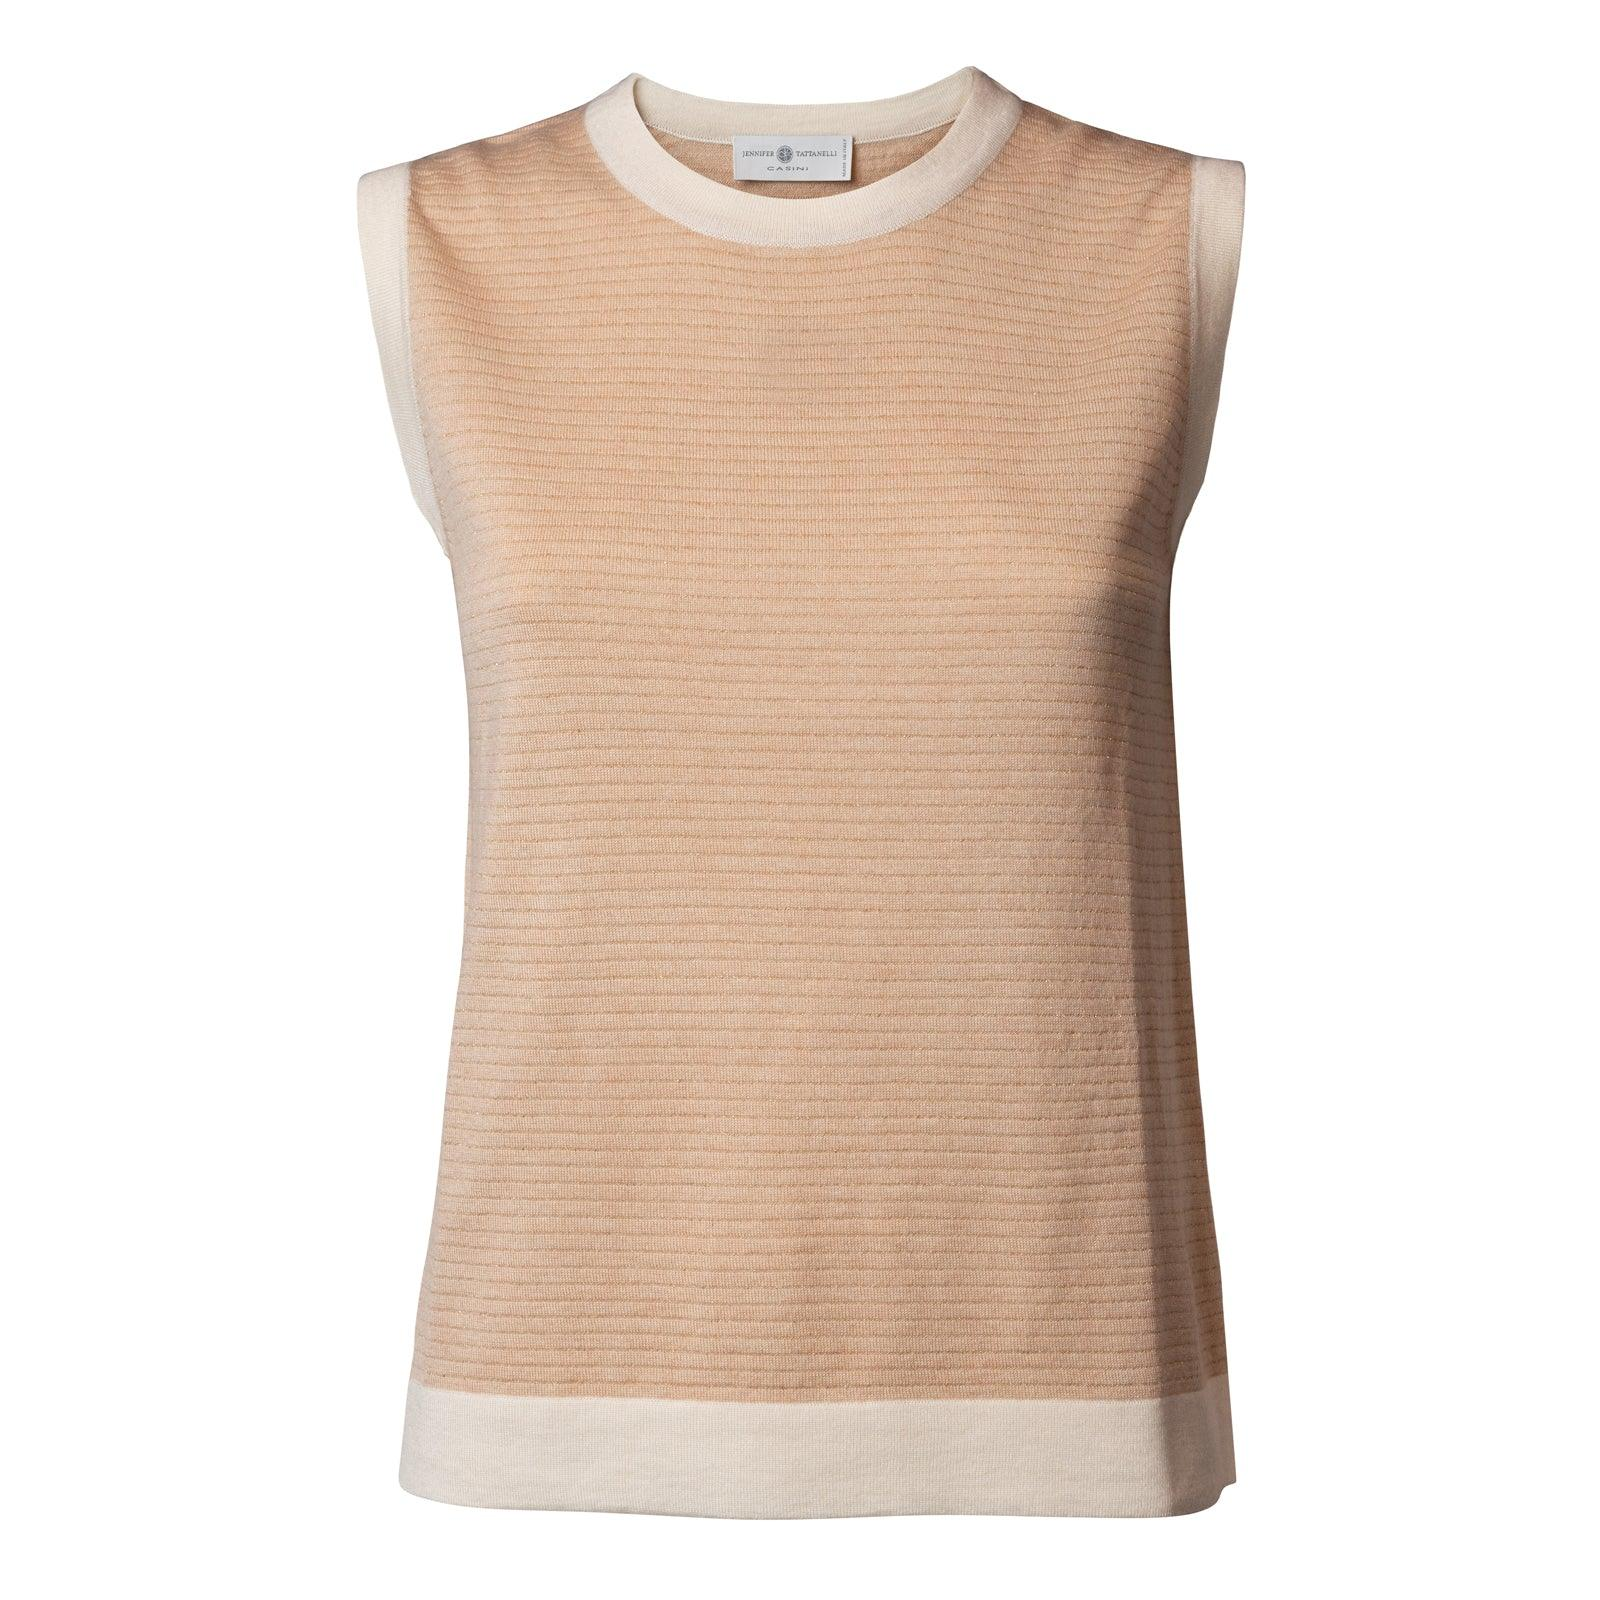 Women's Silk Top In Blush With Lurex